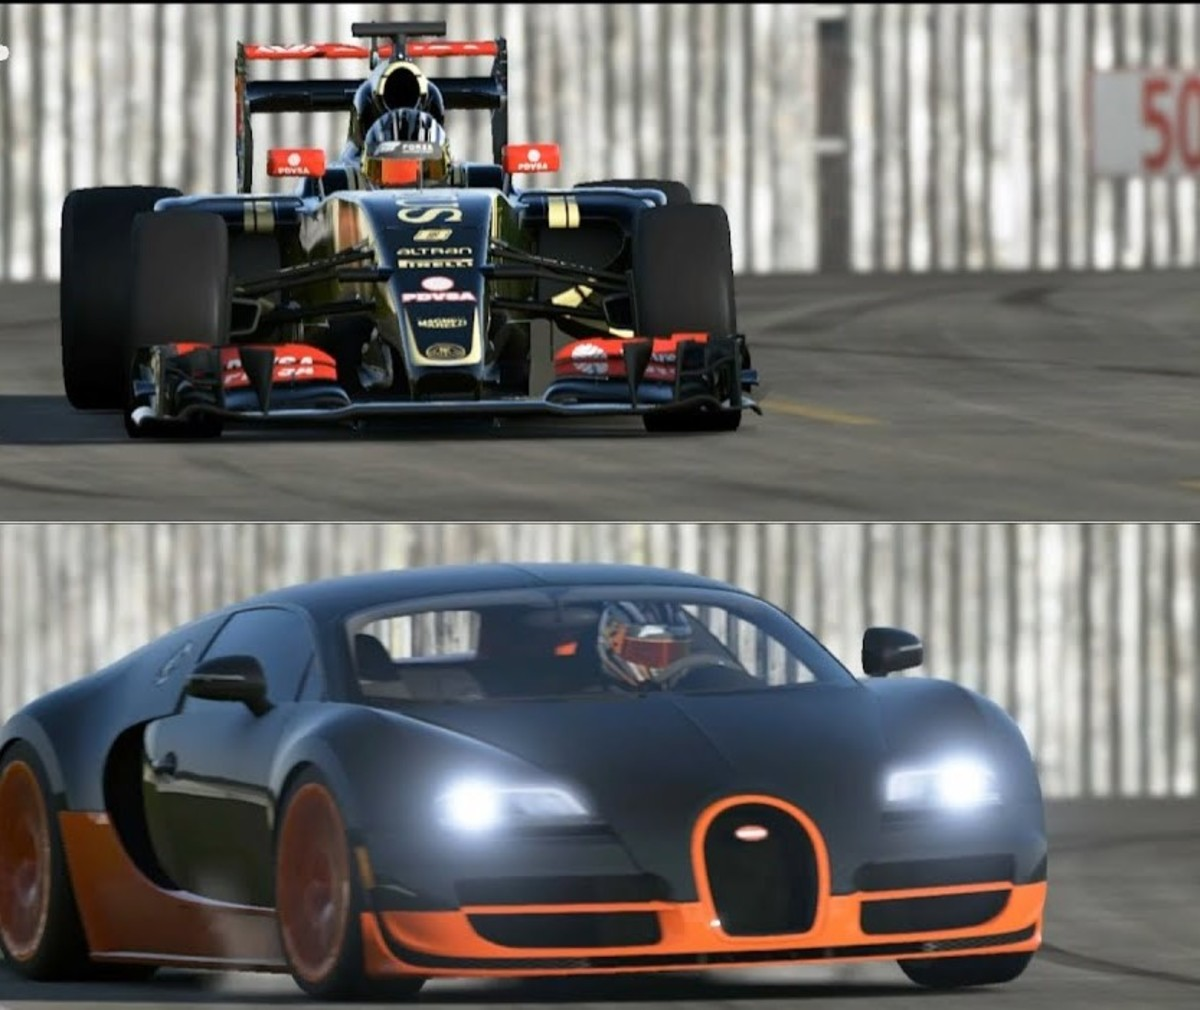 Racing Videos: Formula 1 Car vs. Road Car vs. Boat vs. Jet